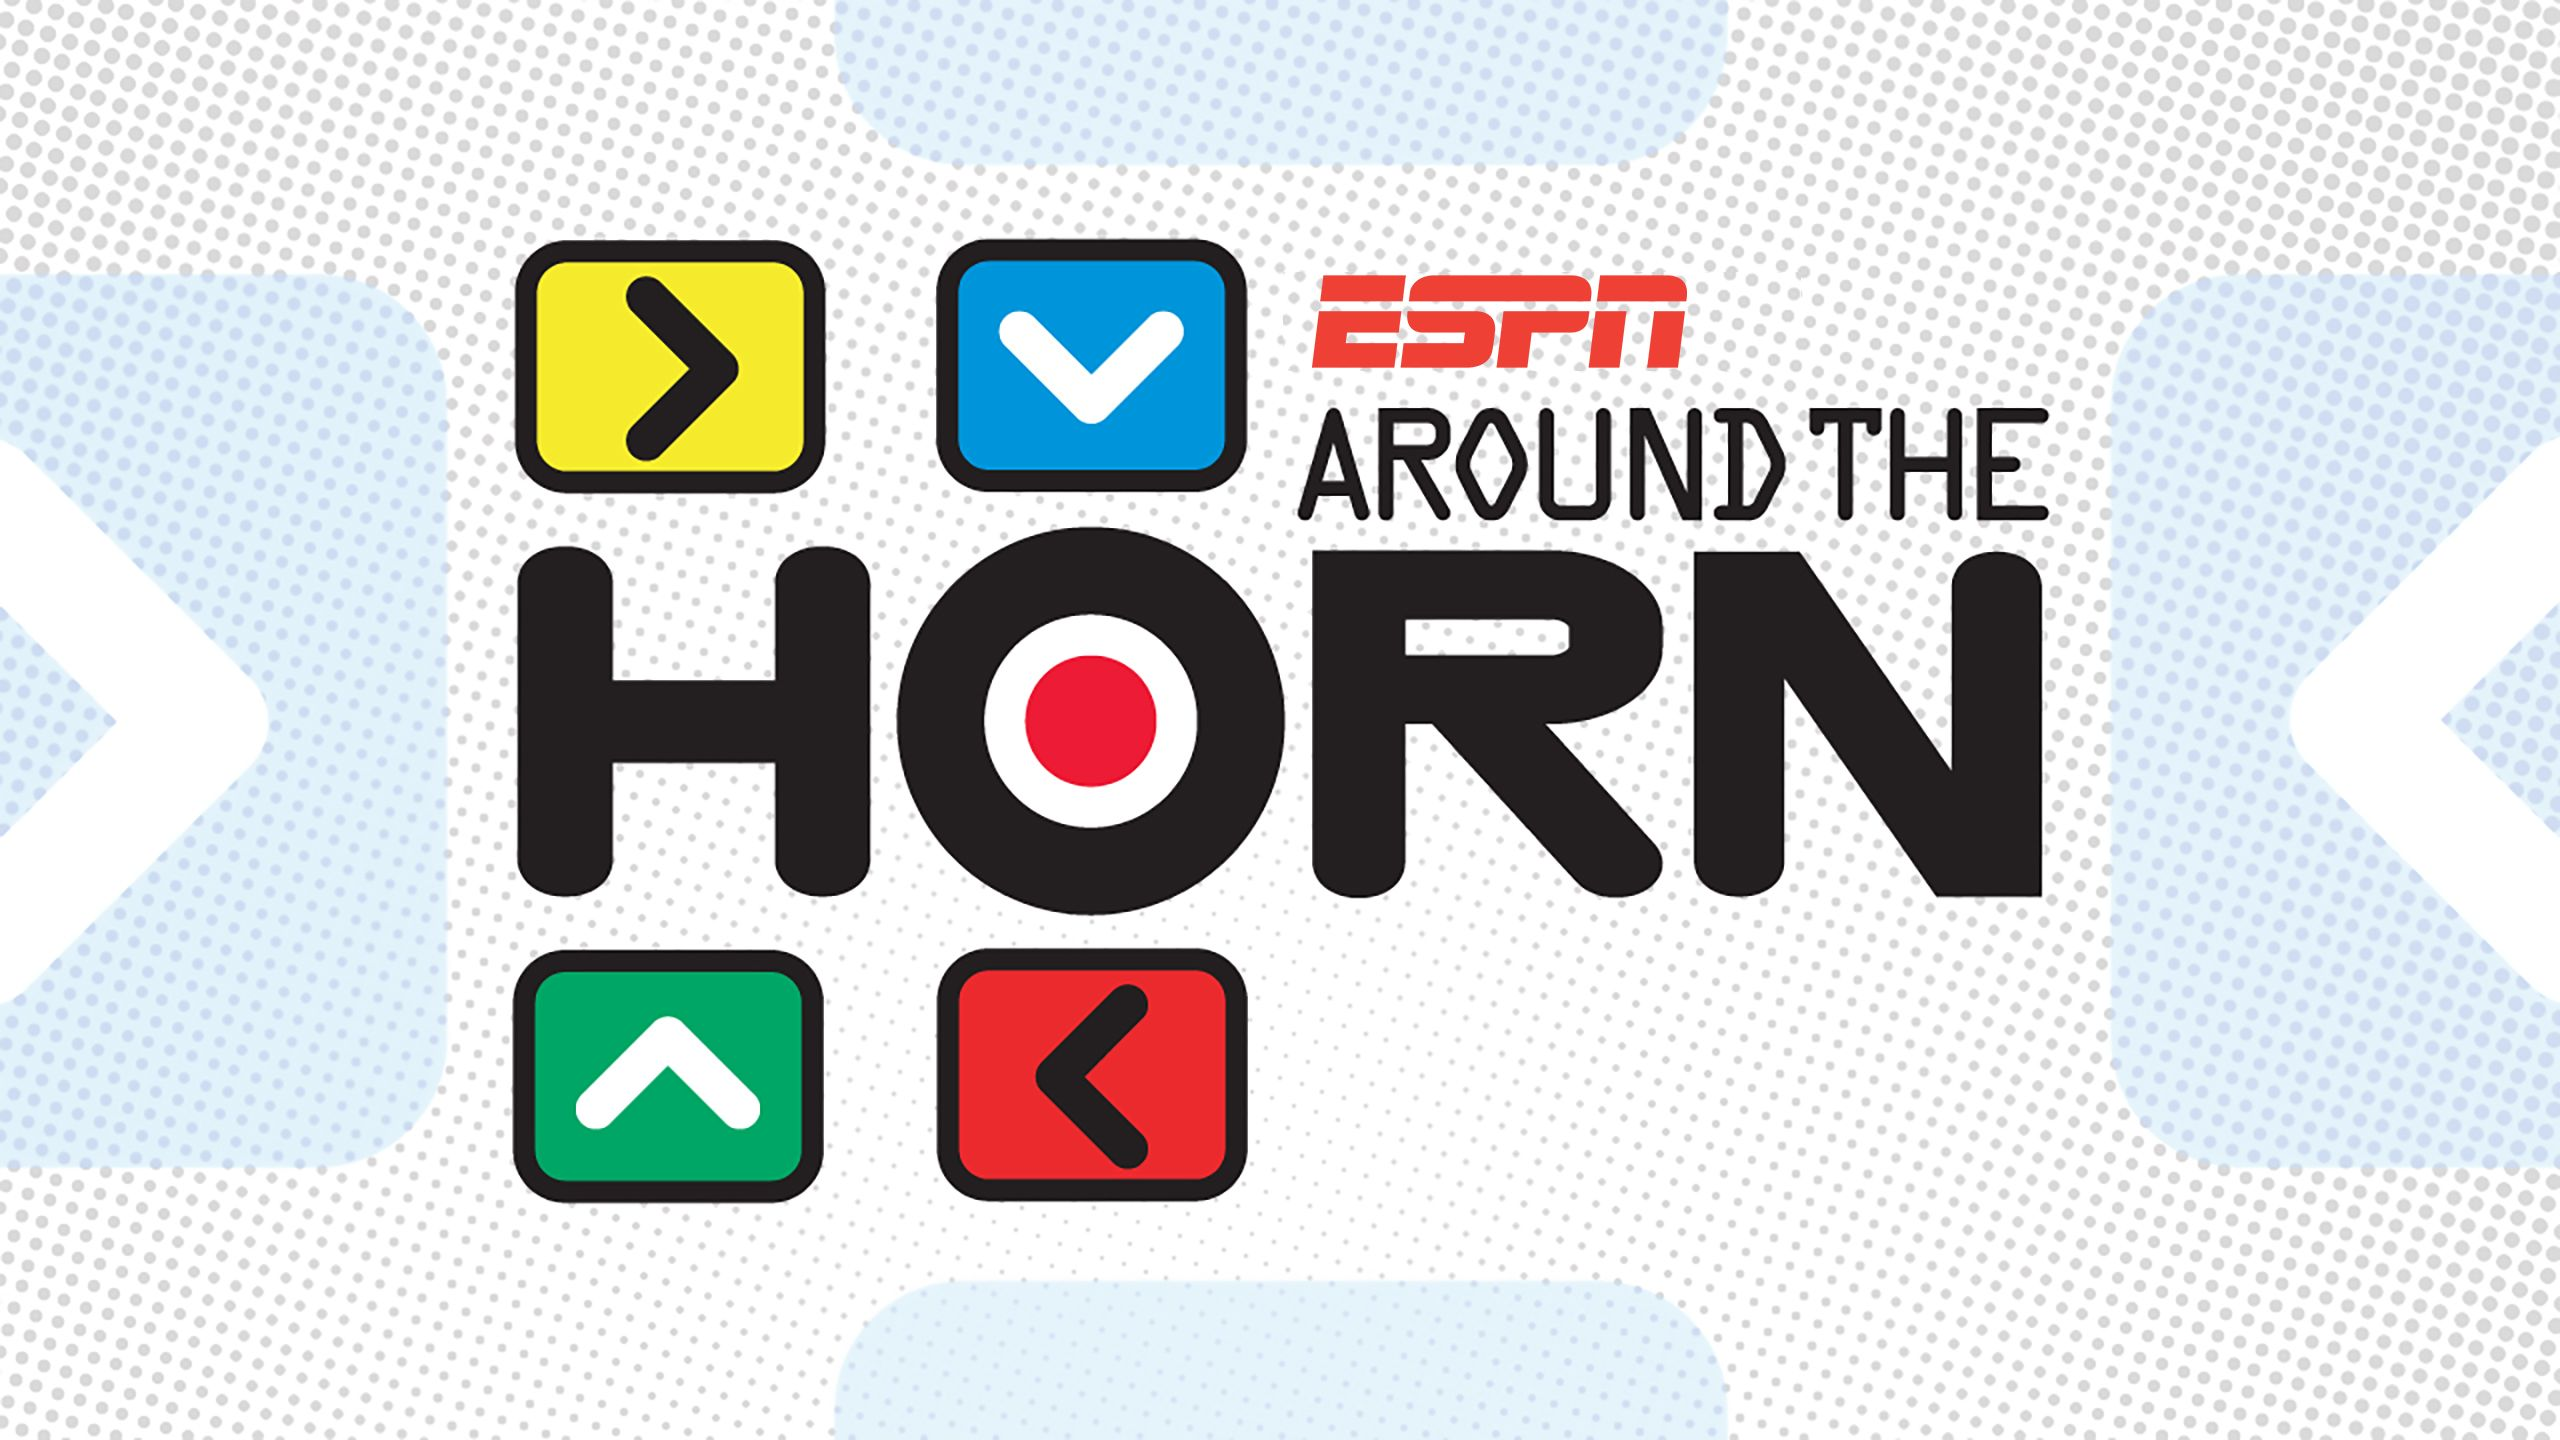 Tue, 5/22 - Around The Horn